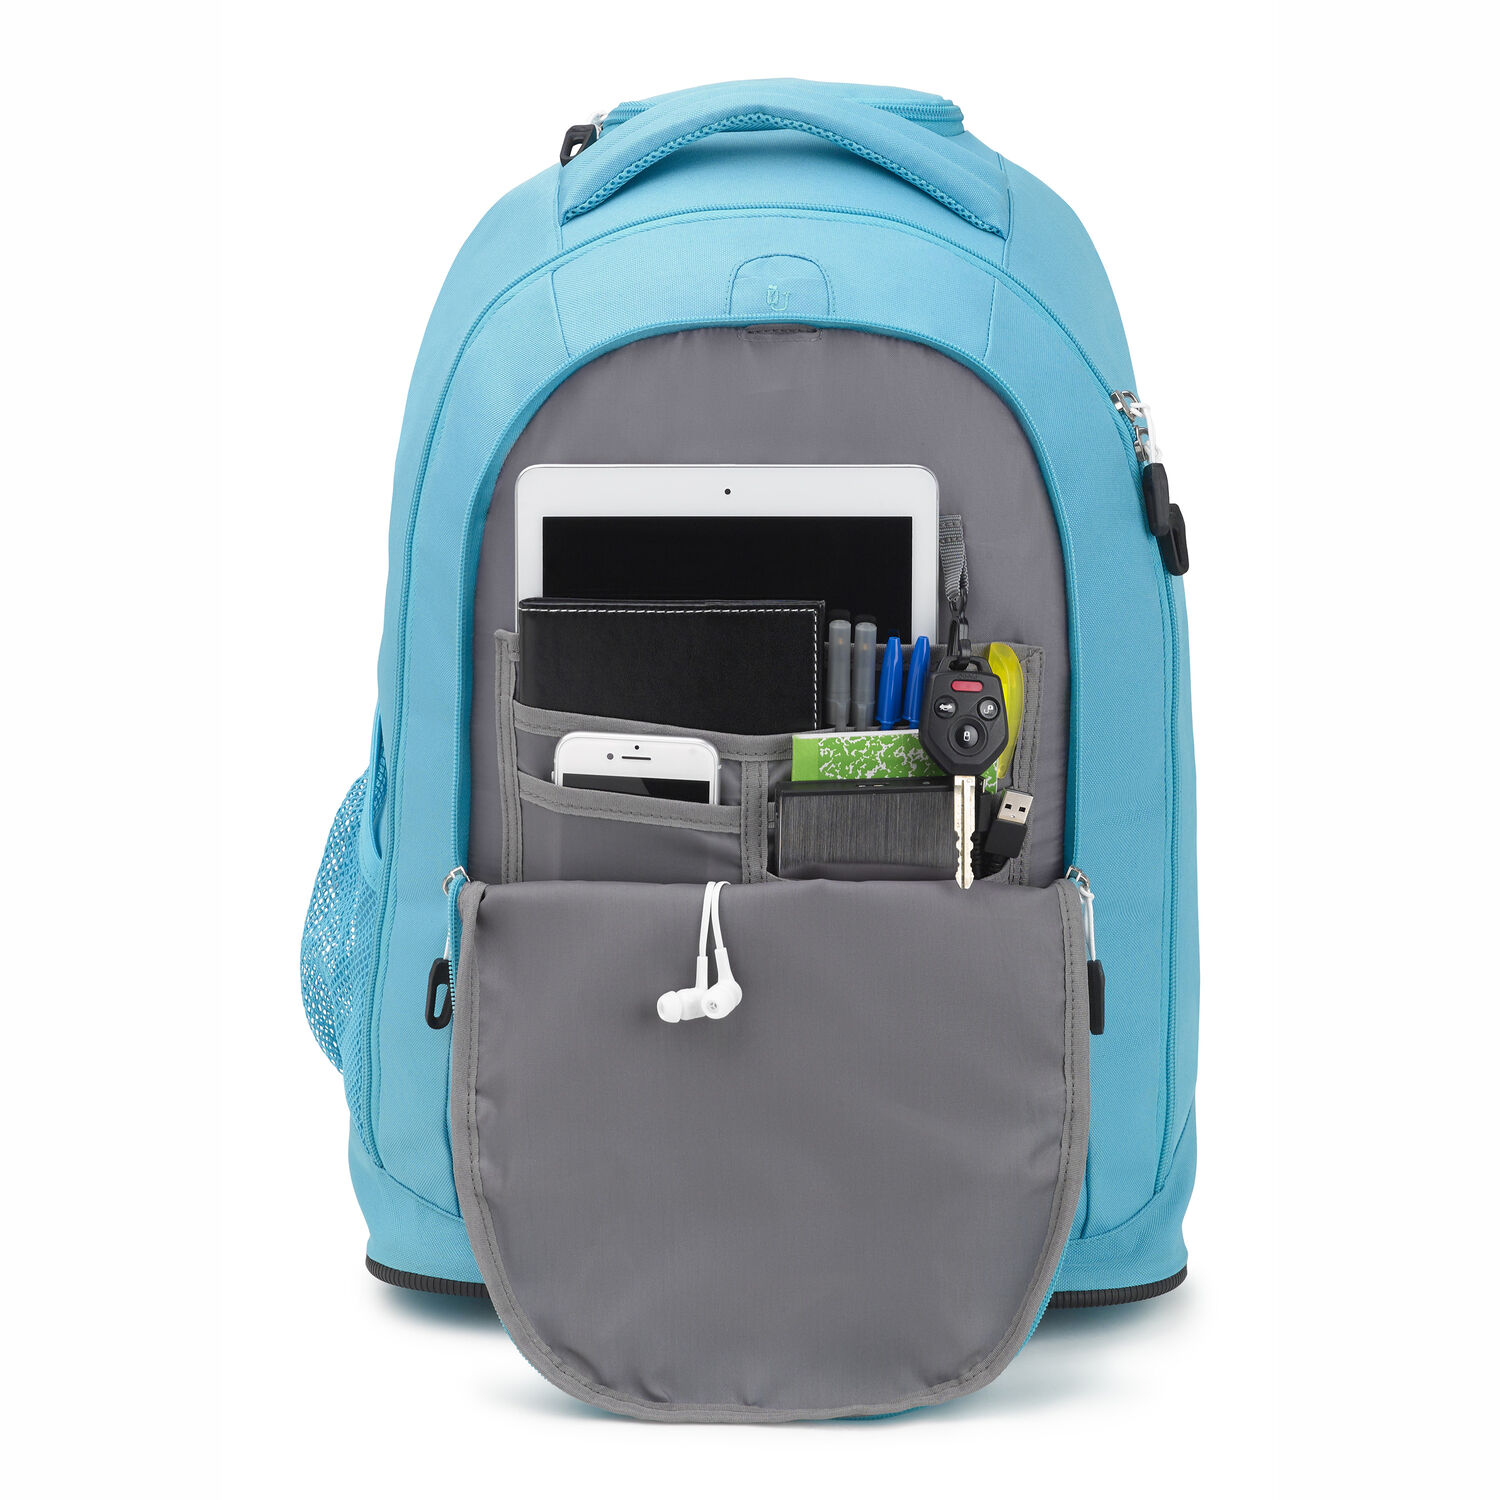 eac2a1feeb4 High Sierra Drydin Wheeled Backpack in the color Tropic Teal White.